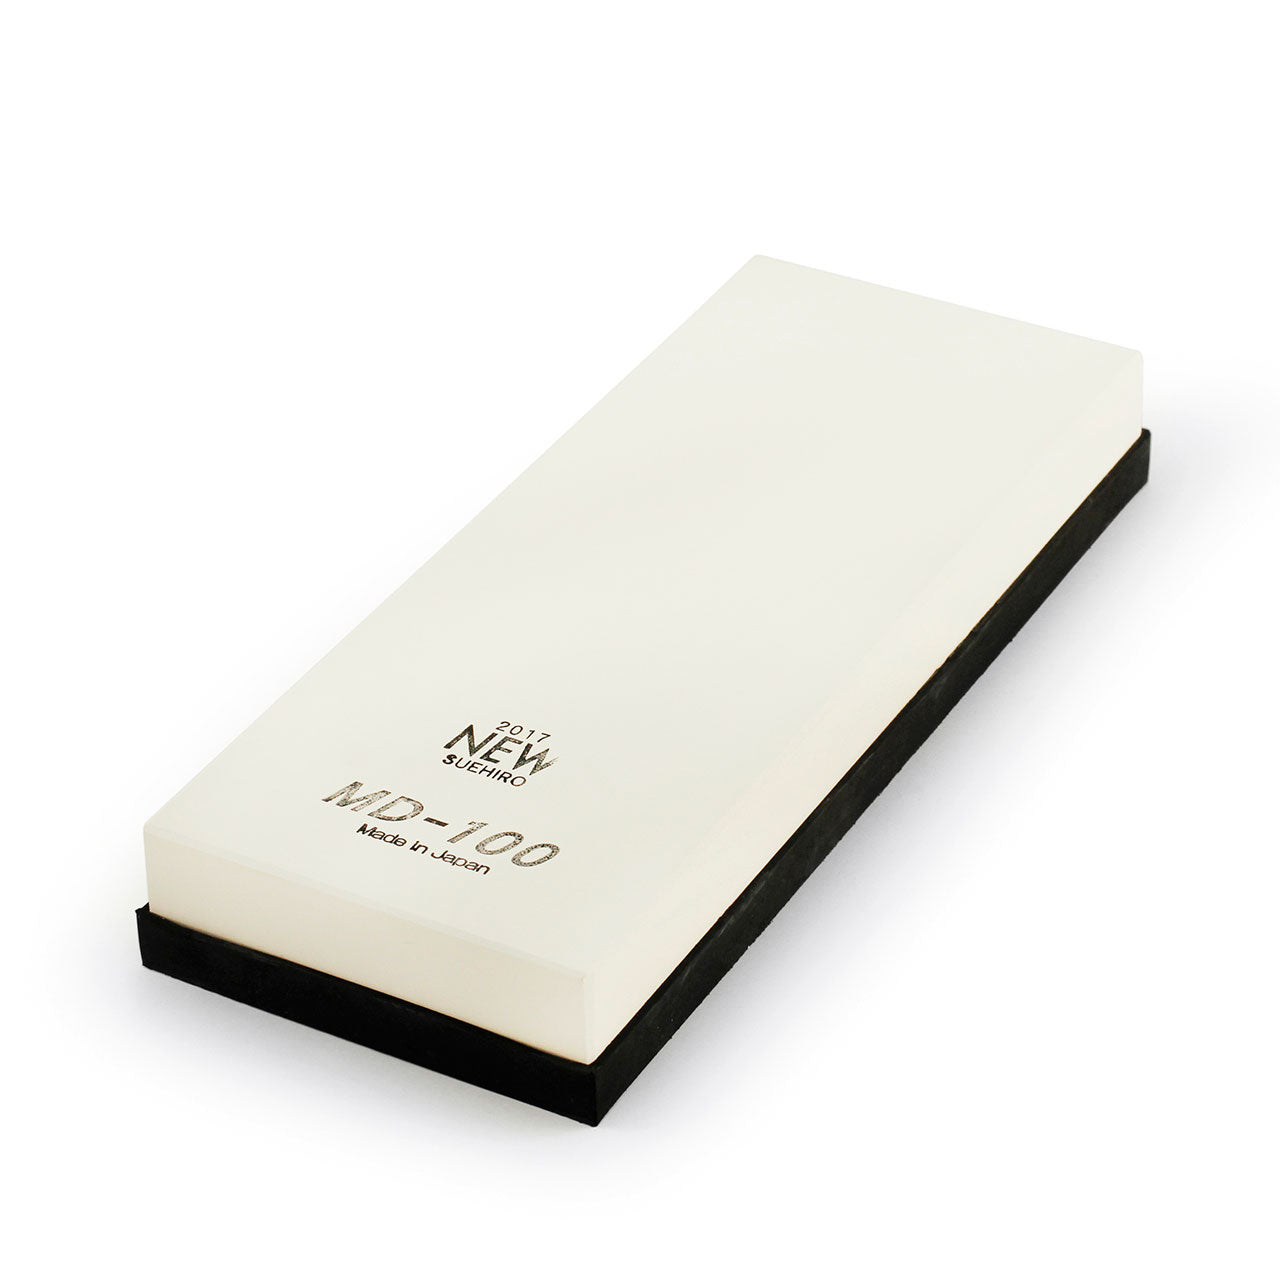 Suehiro Debado MD #1000 Knife Sharpening Stone